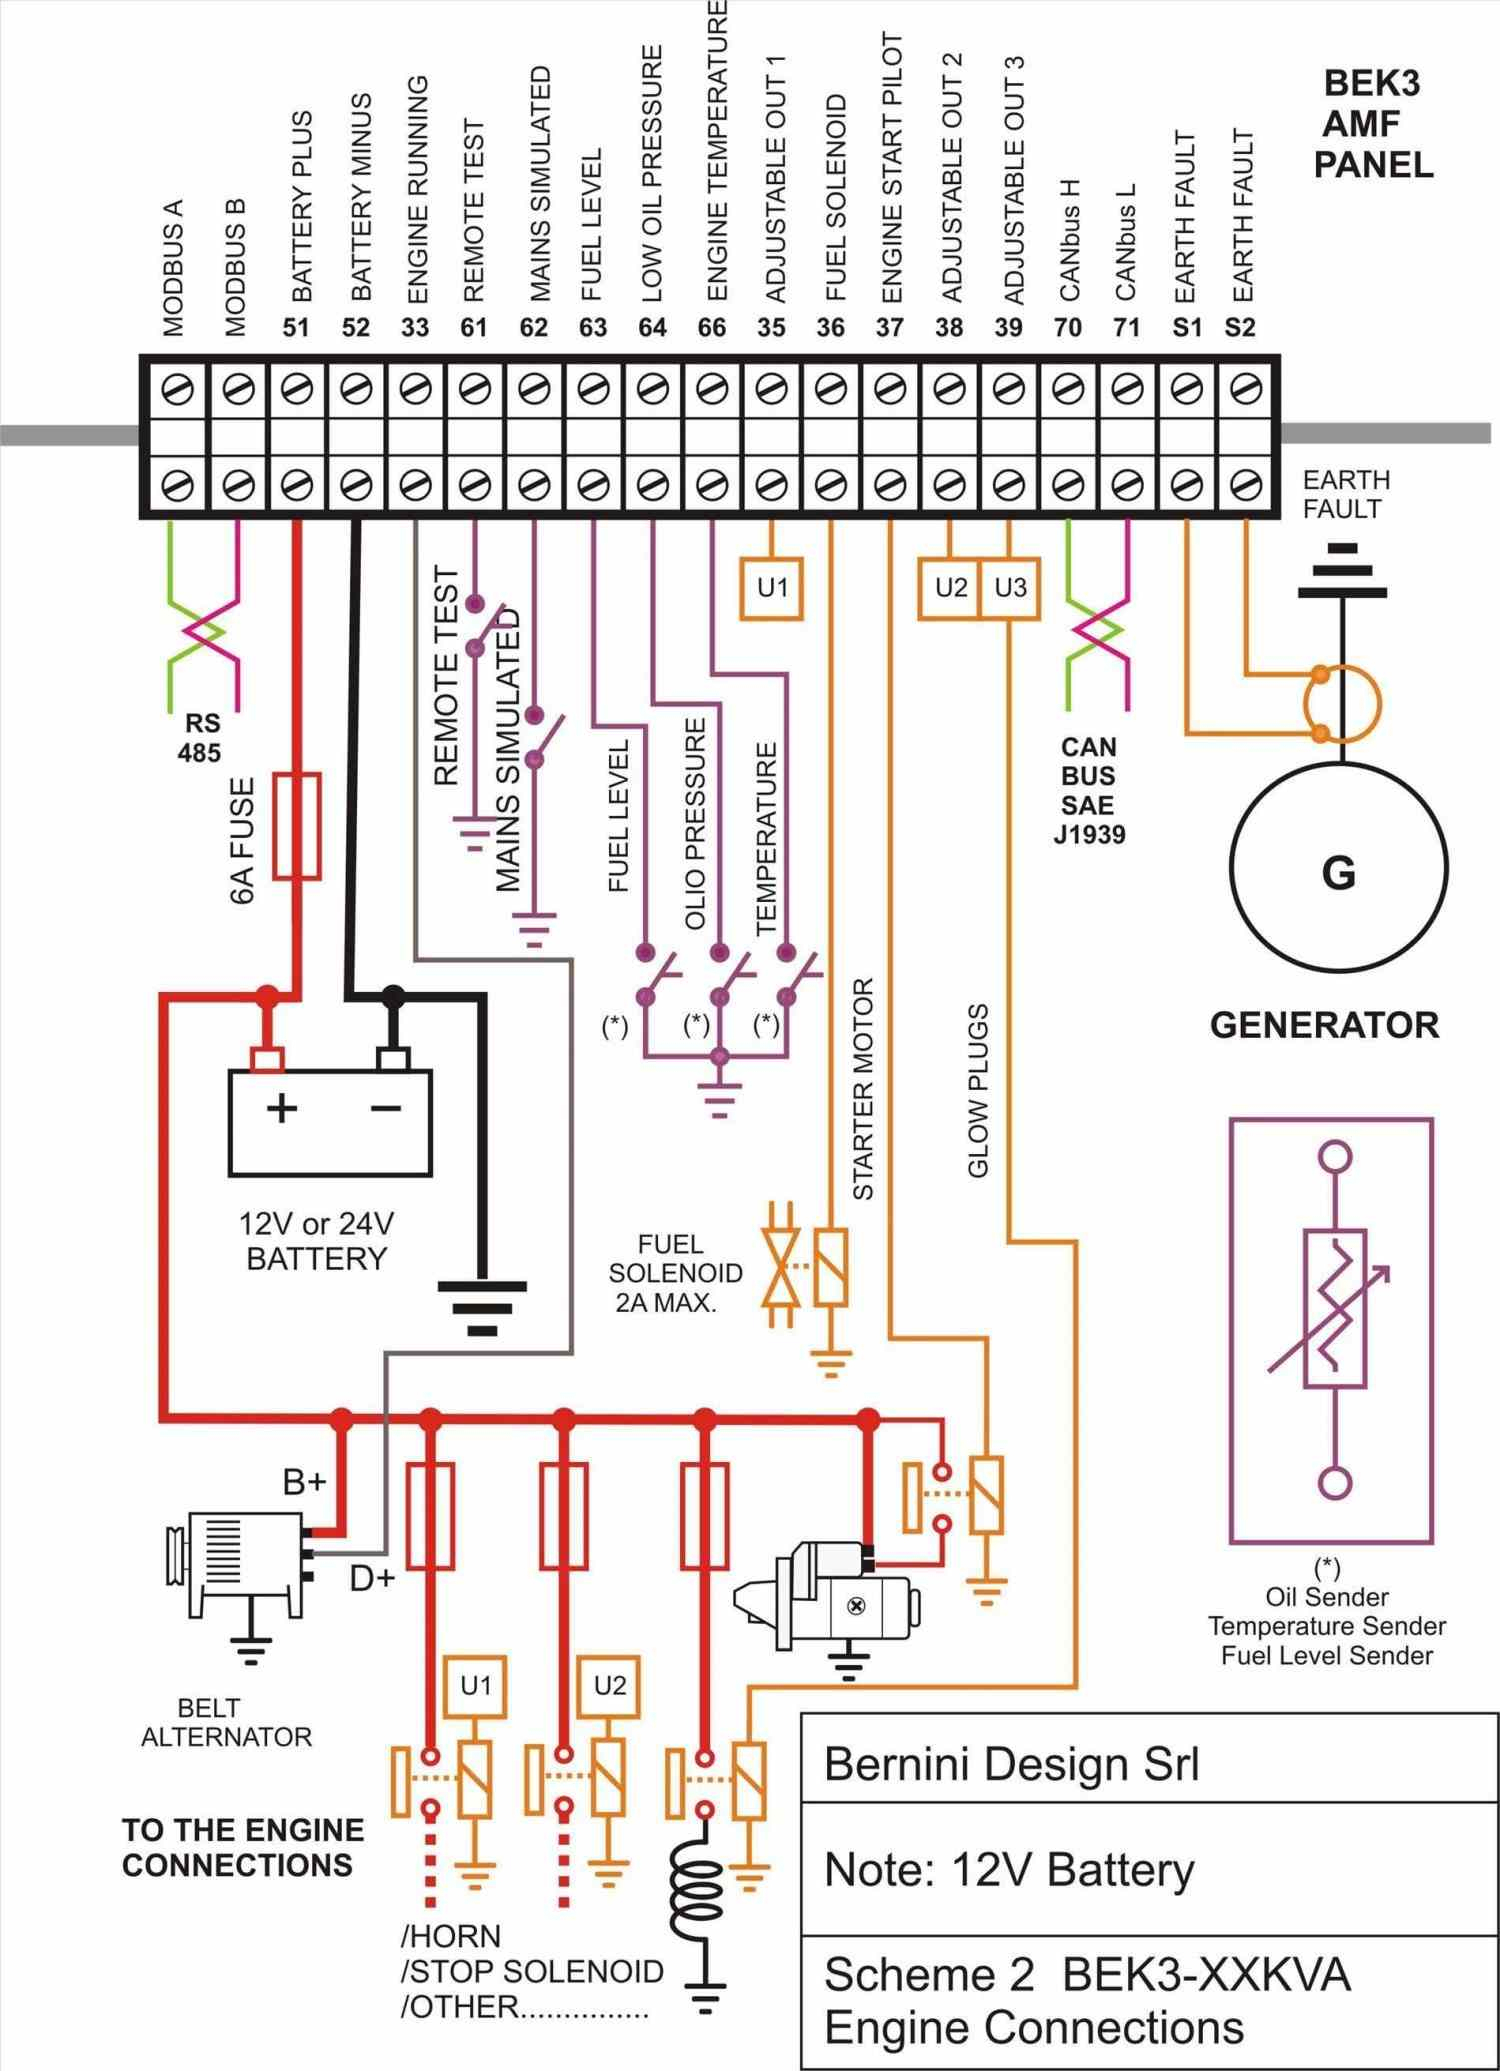 Gas Furnace Thermostat Wiring Diagram from 2020cadillac.com